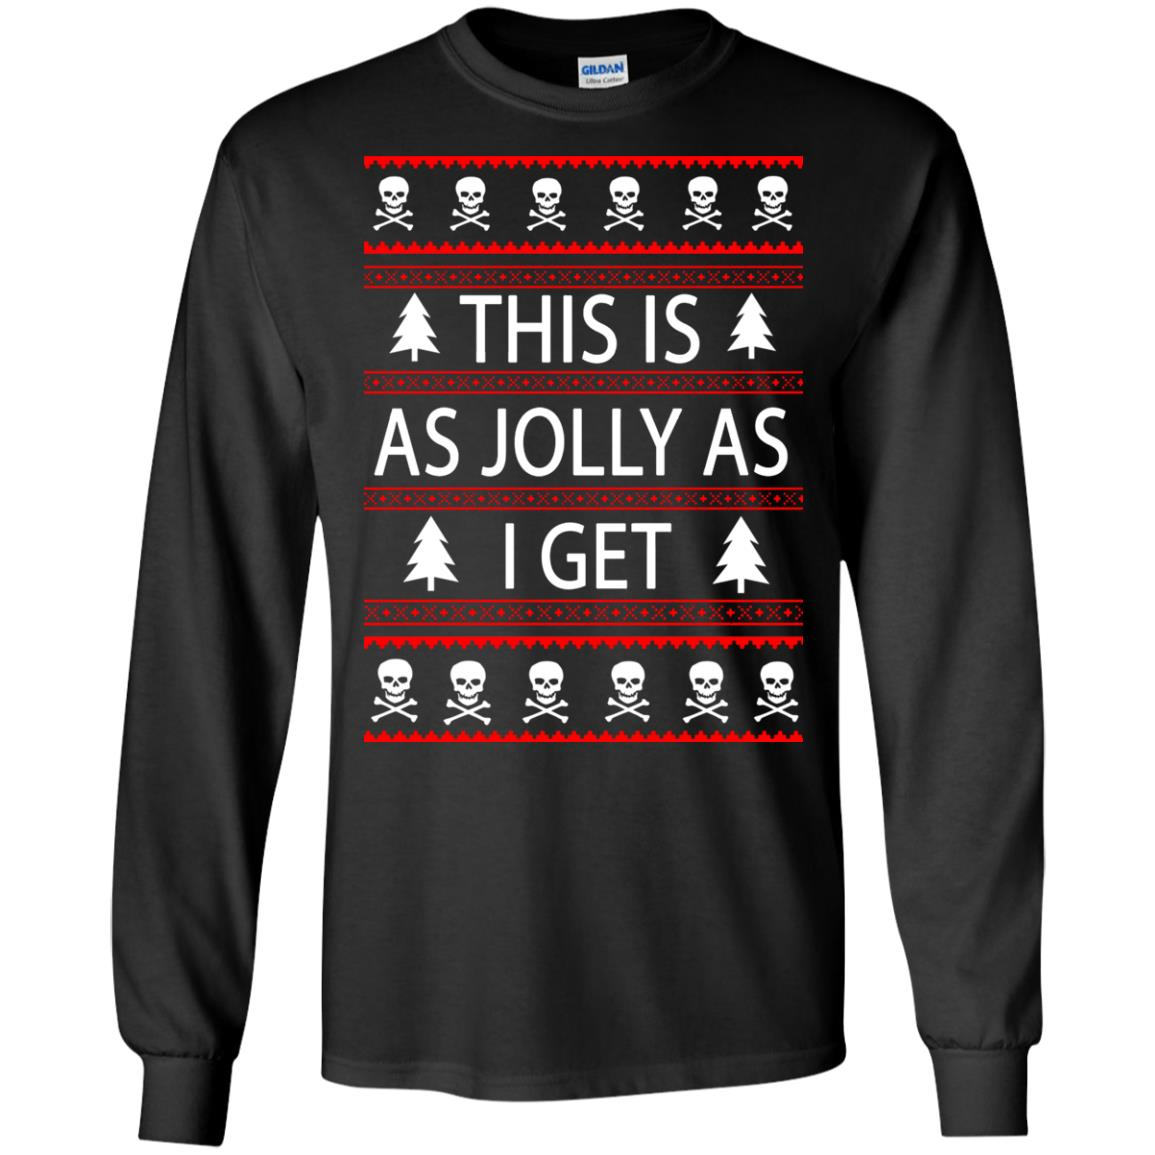 image 3159 - This Is as Jolly as I Get Emo Gothic Christmas Sweatshirts, Hoodie